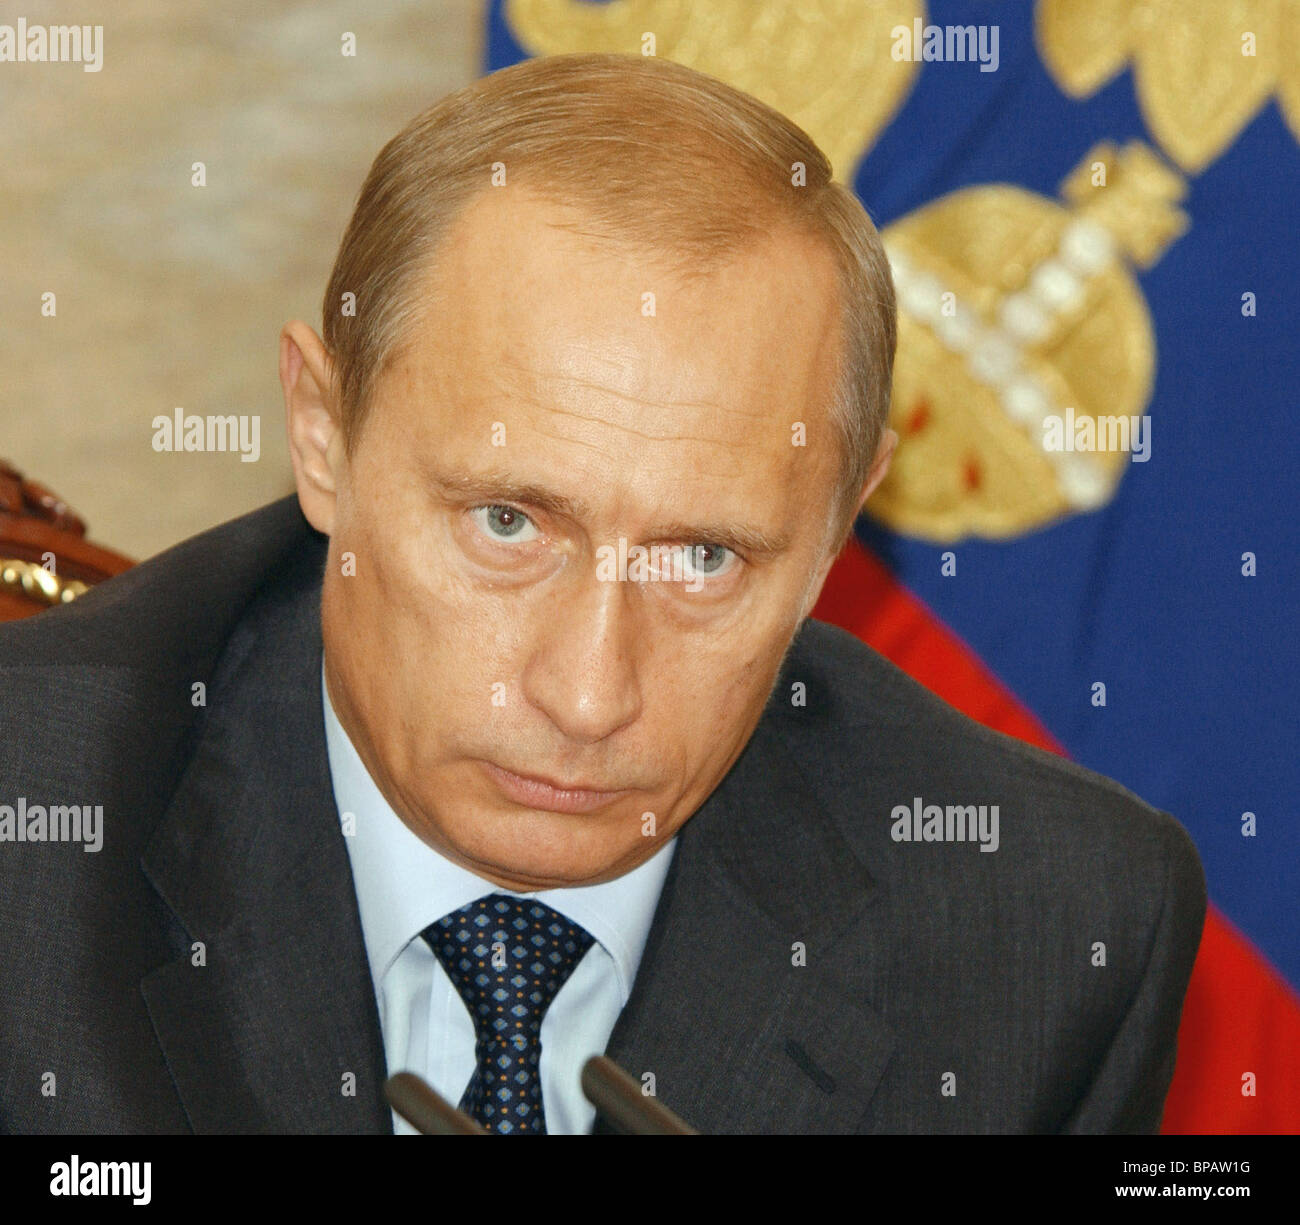 Putin met with Government members - Stock Image